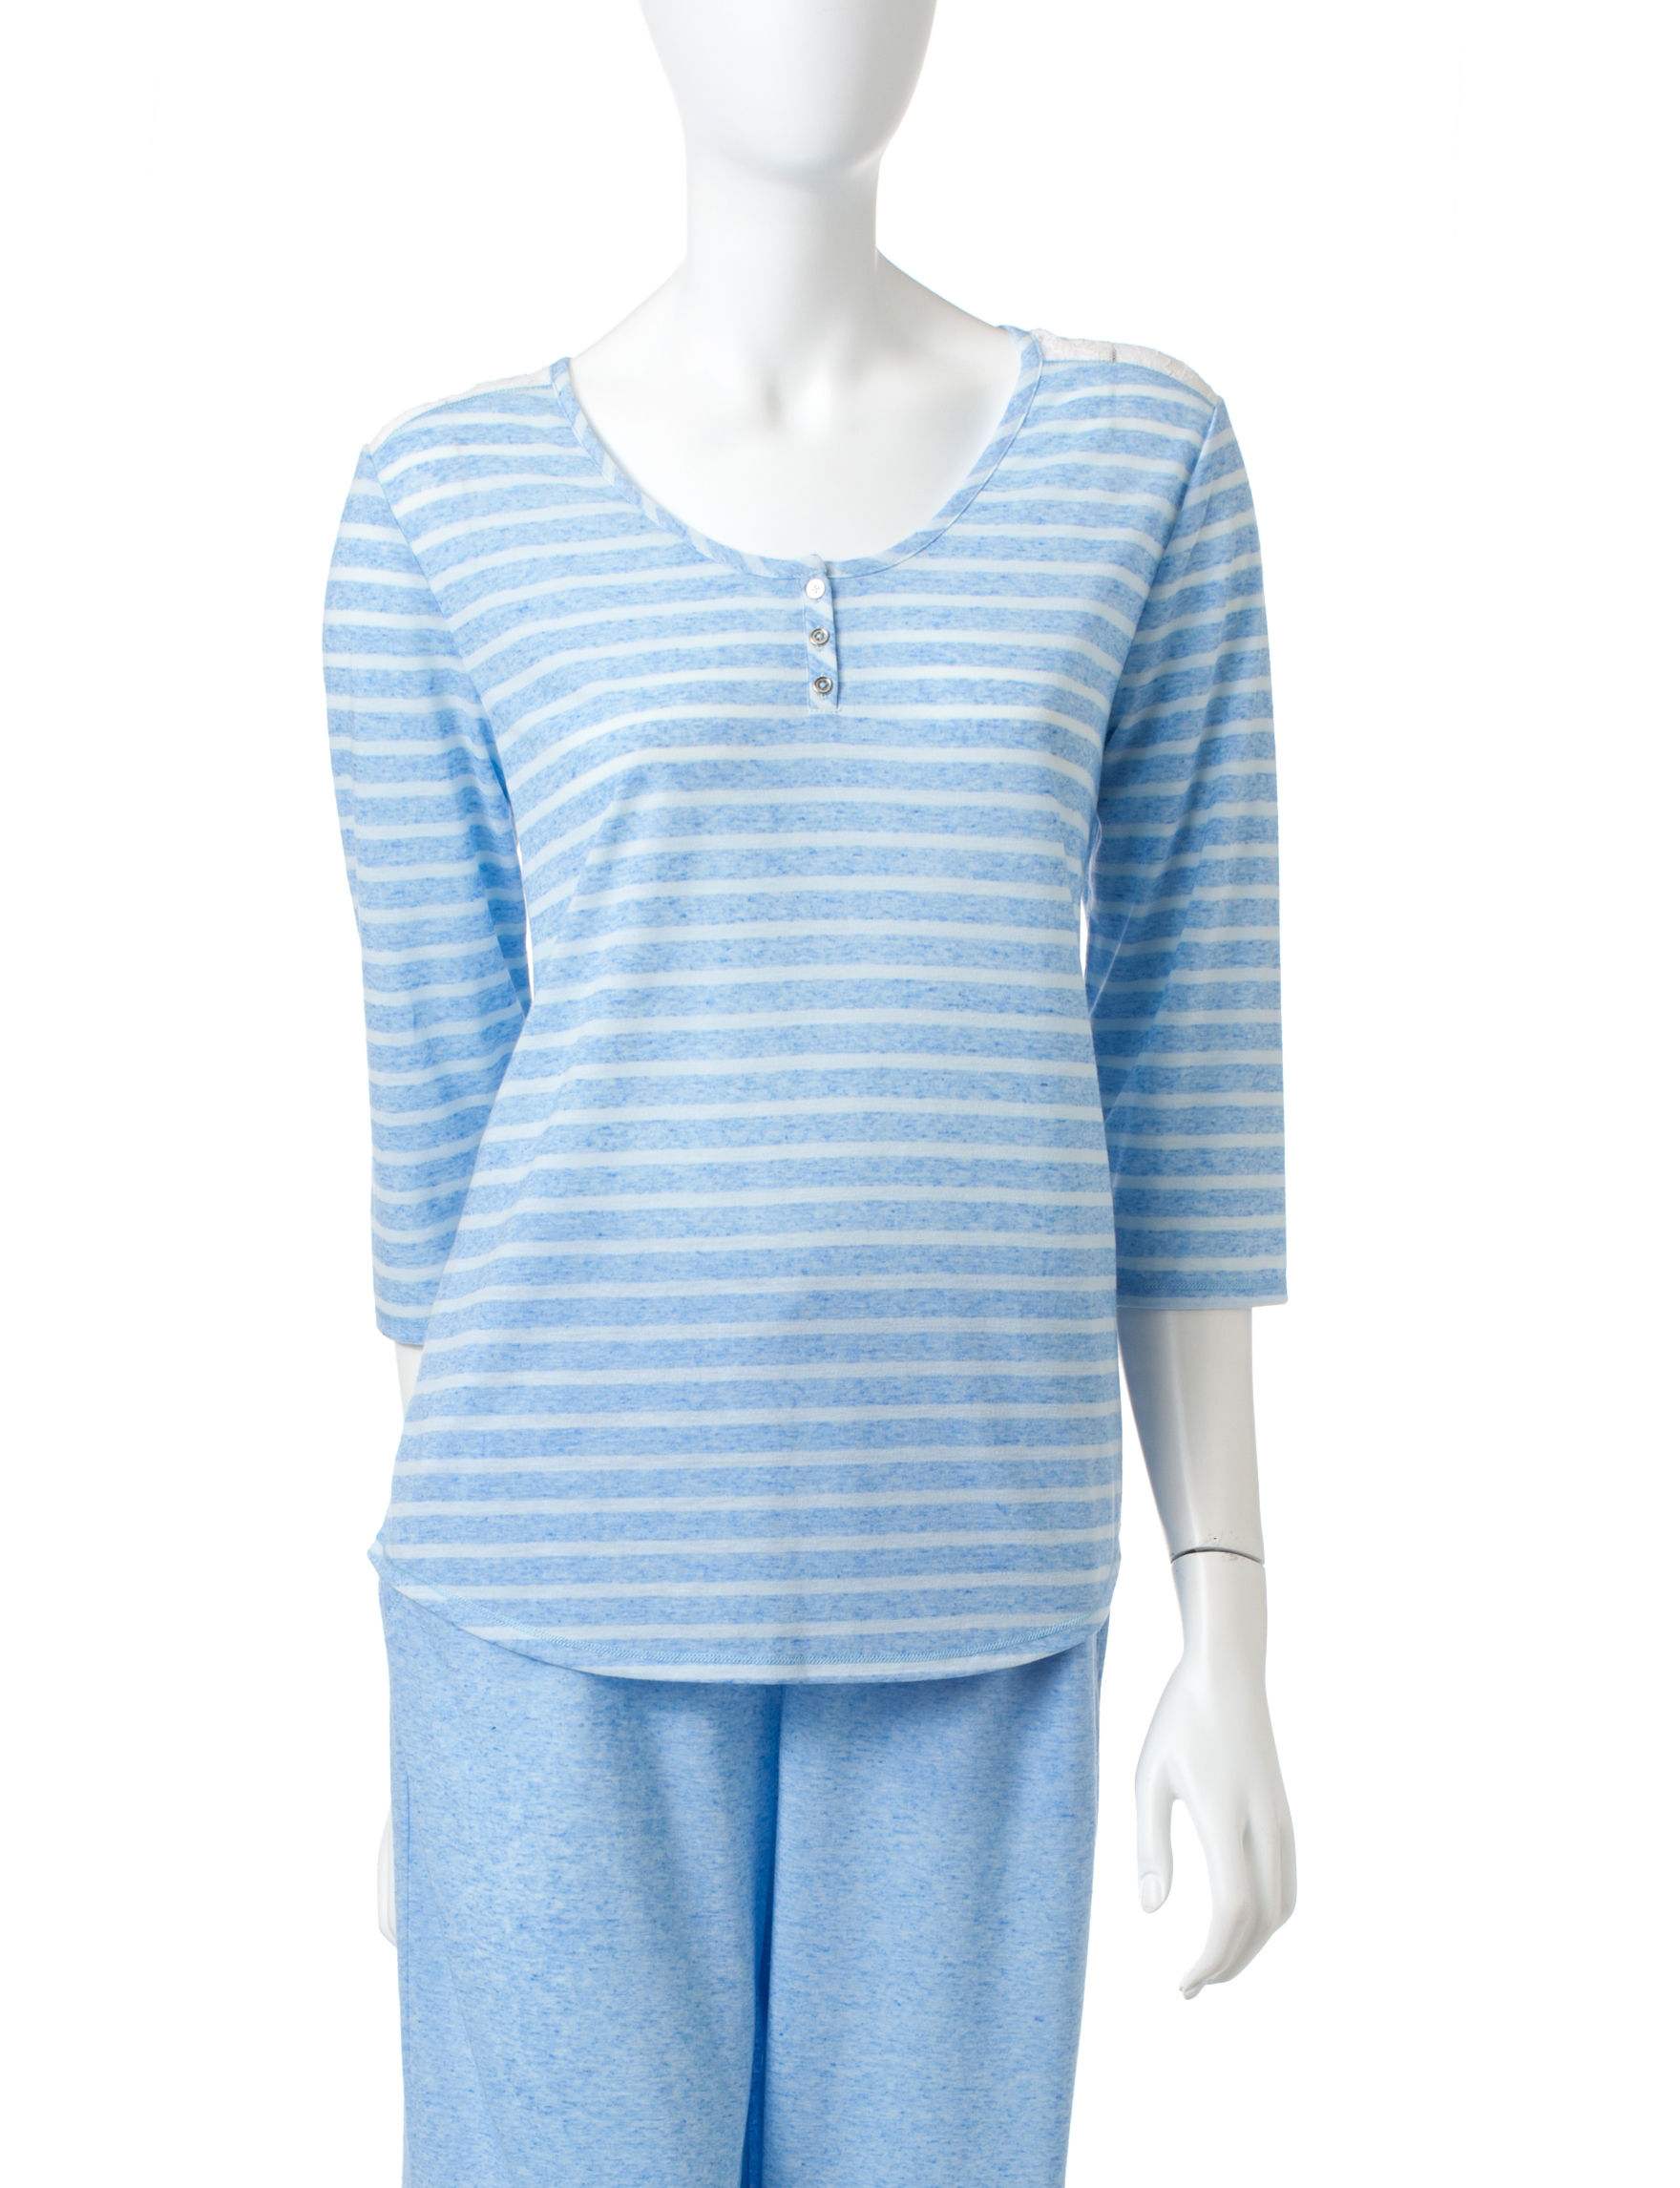 Jaclyn Intimates Blue Pajama Tops